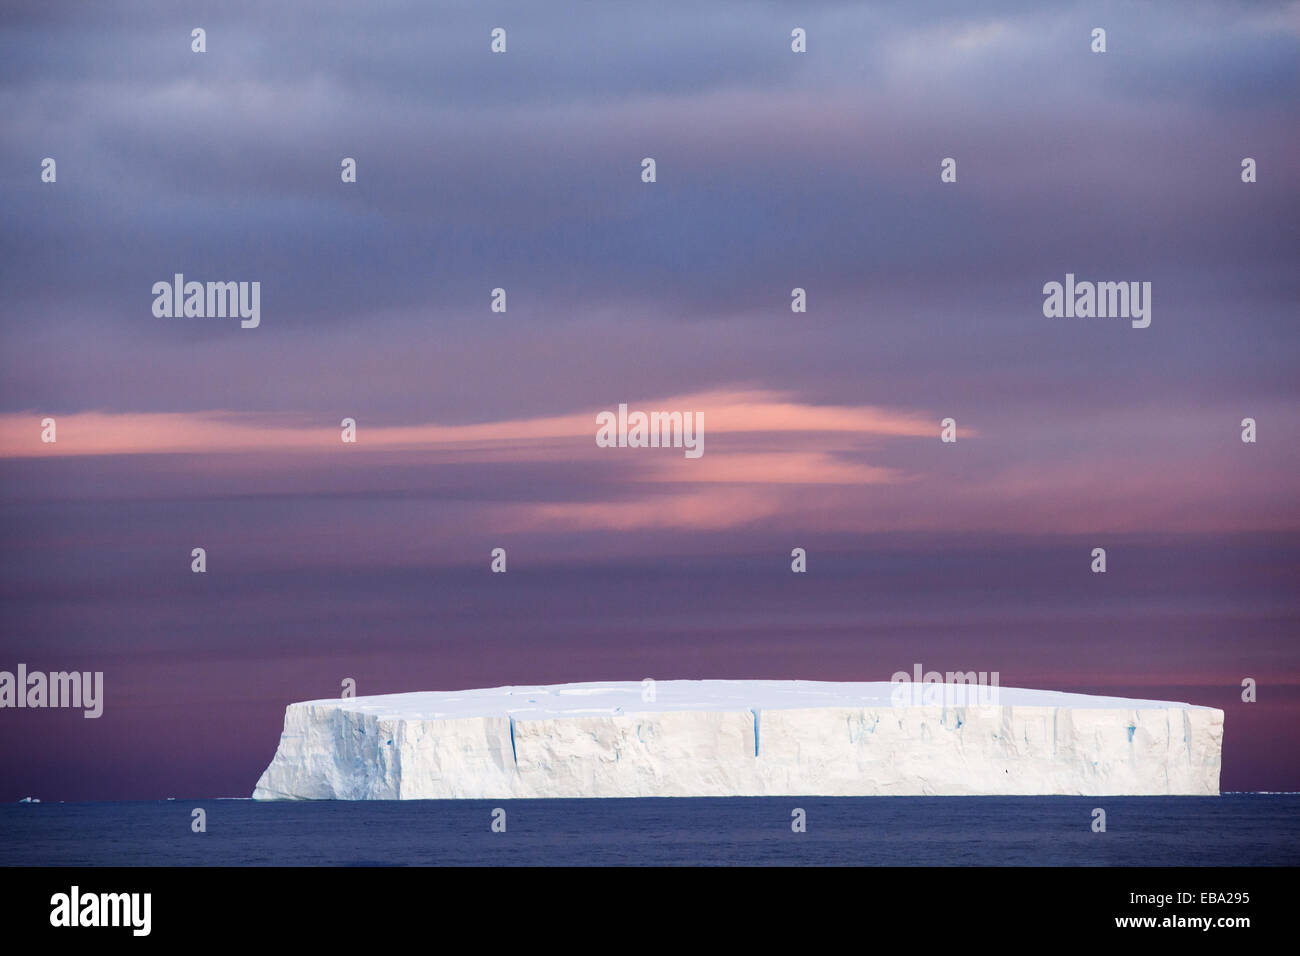 Iceberg, Péninsule Antarctique, l'Antarctique Photo Stock